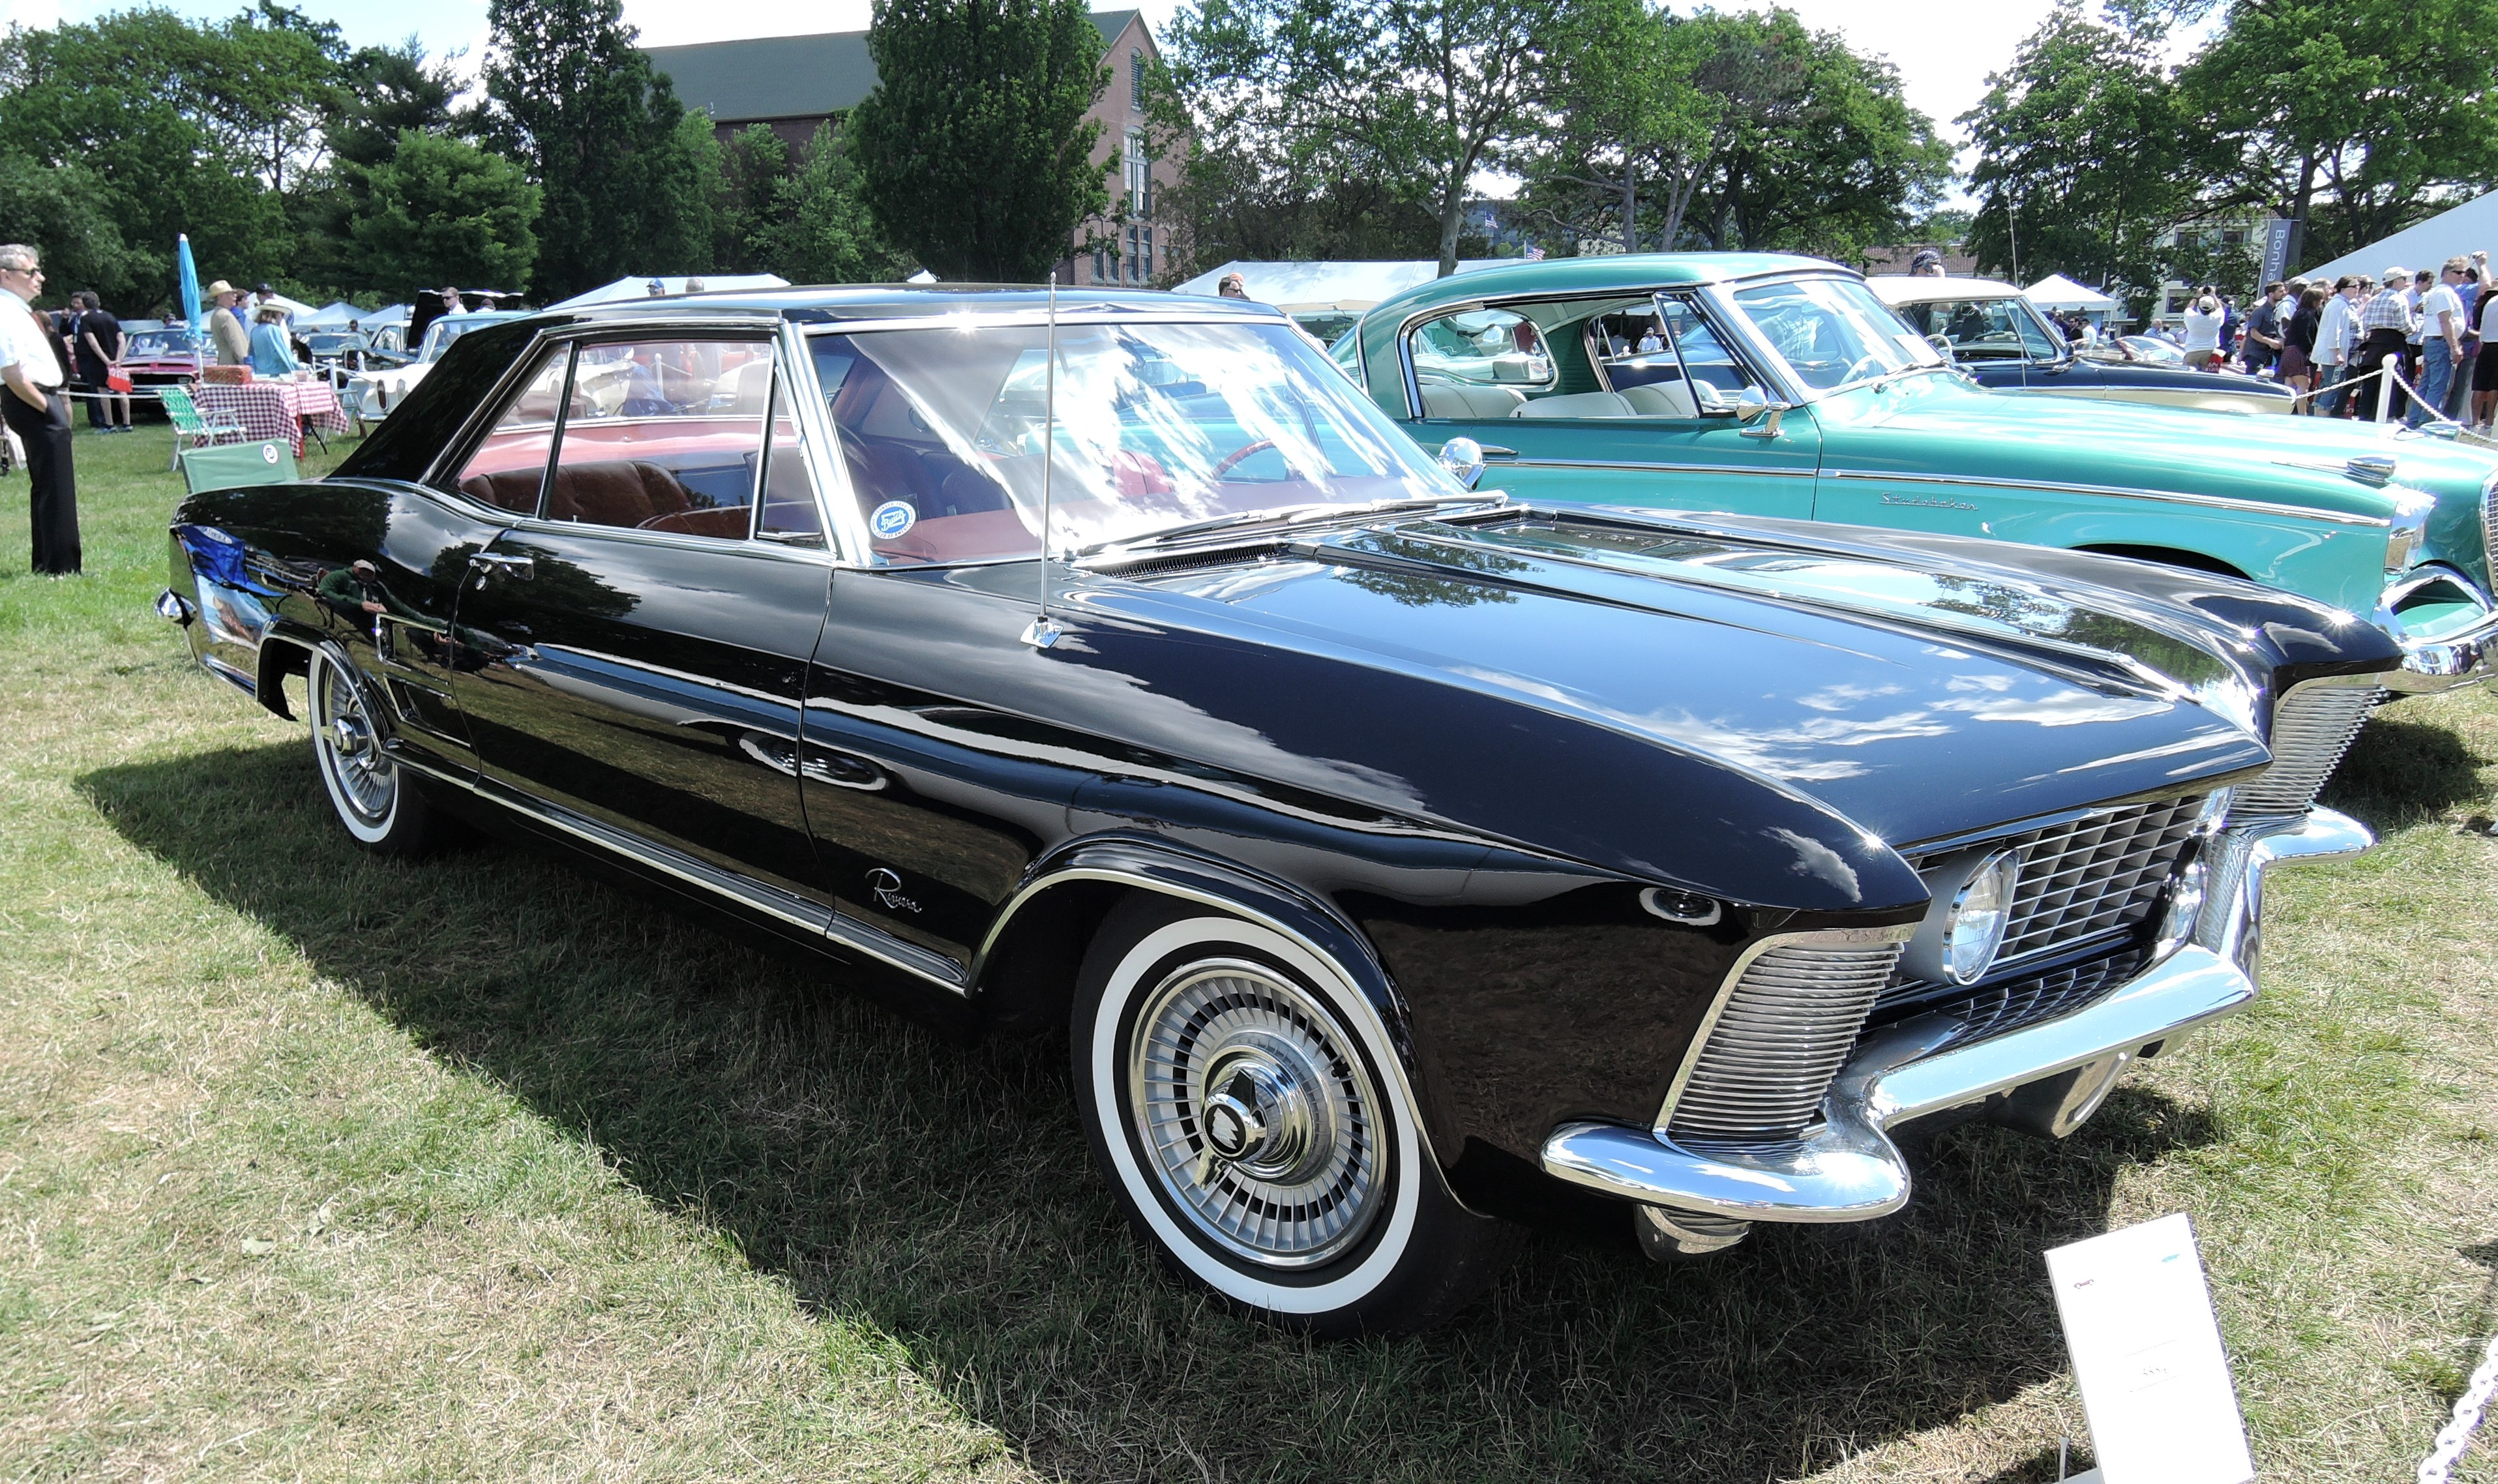 black 1963 Buick Riviera - Greenwich Concours d'Elegance 2017